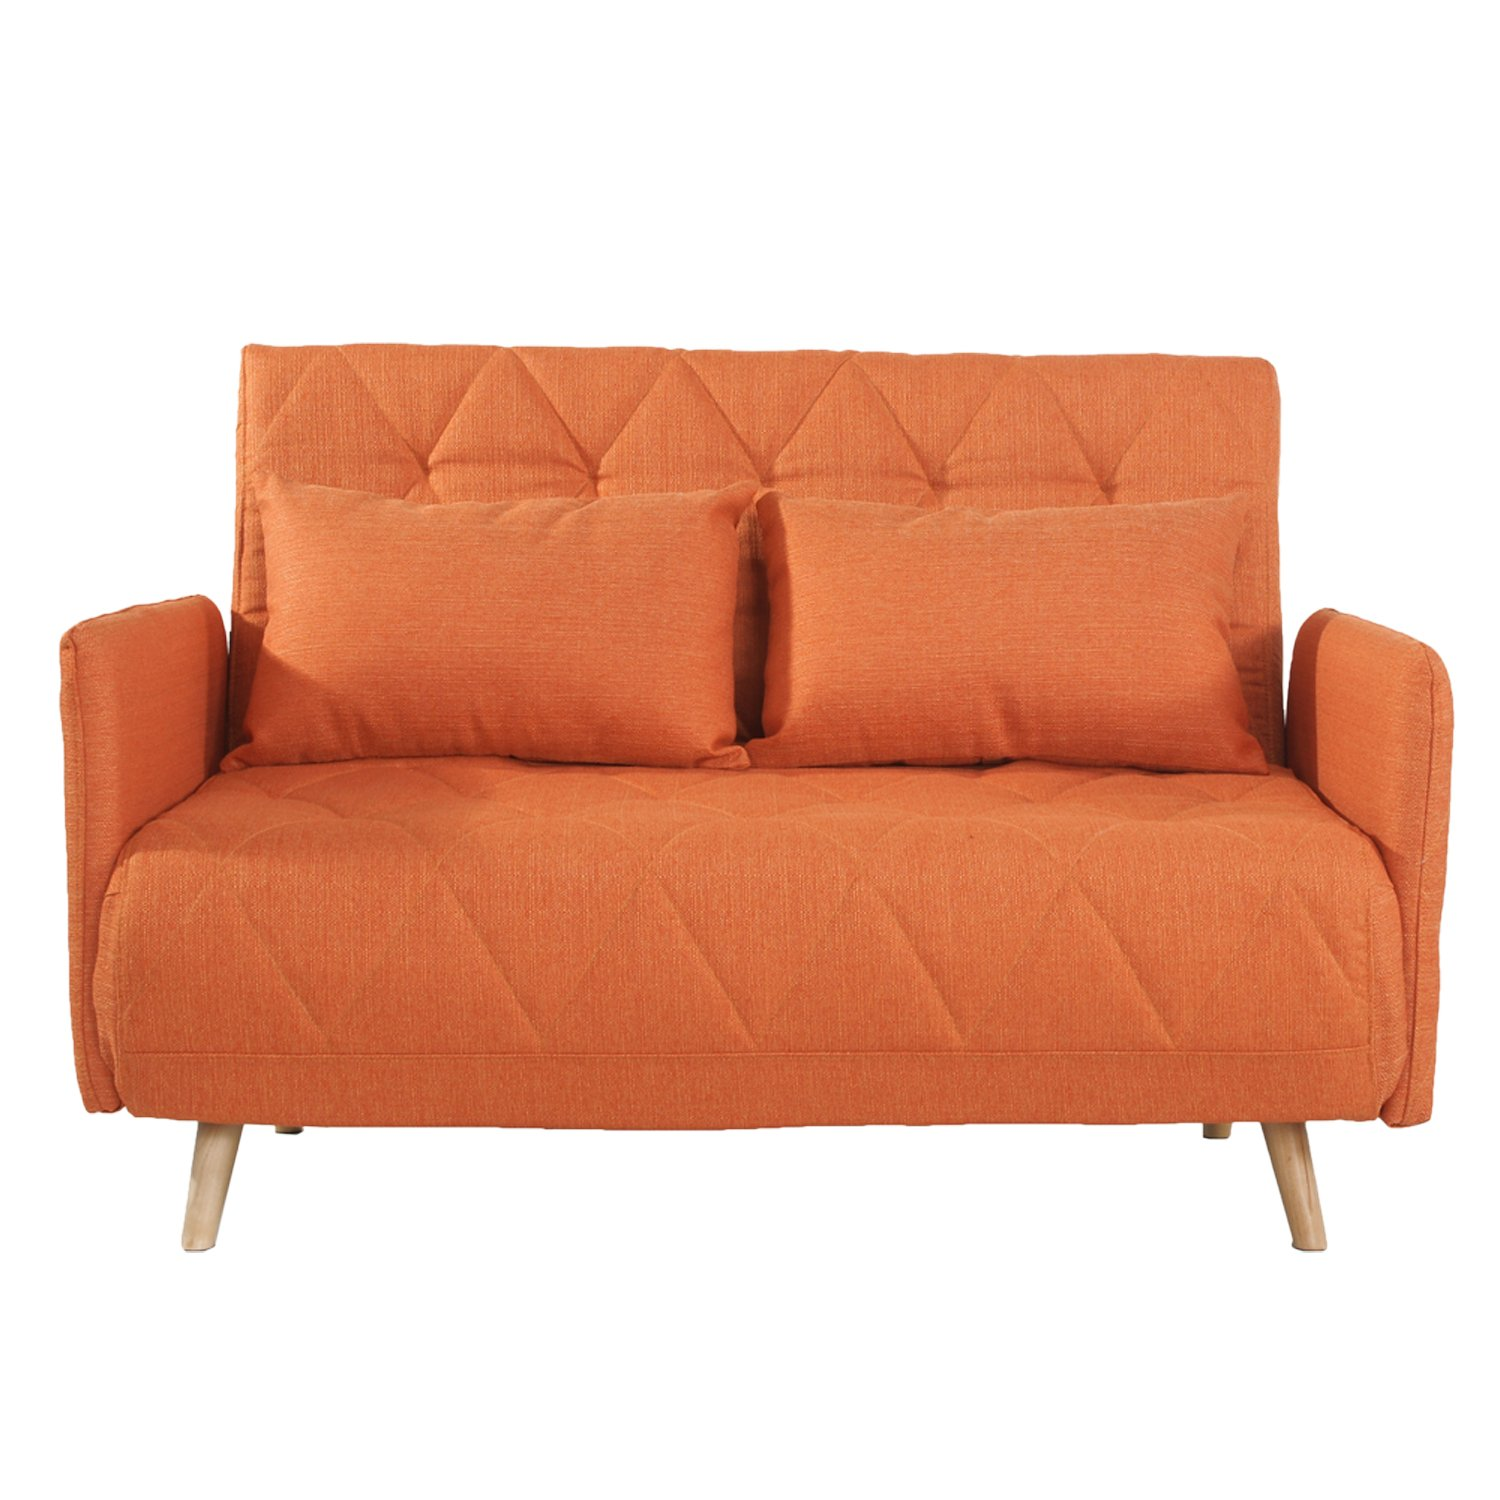 Joveco Fabric Tufted Sofa Bed